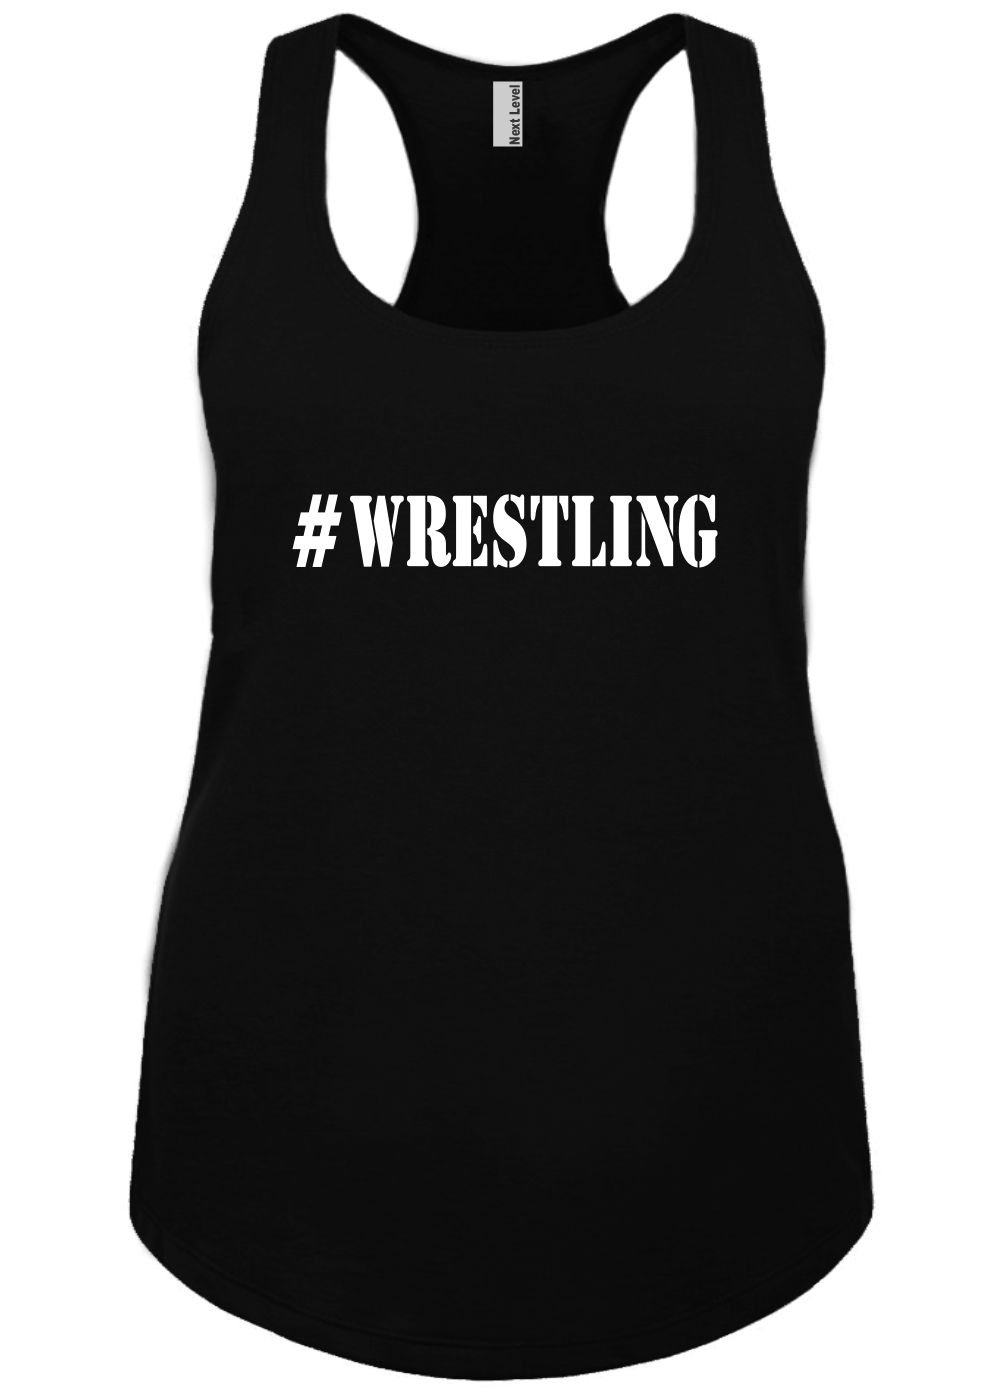 Mighty Ambitious Ladies Funny Tank Top #wrestling (Hashtag) Caps 2X by Mighty Ambitious